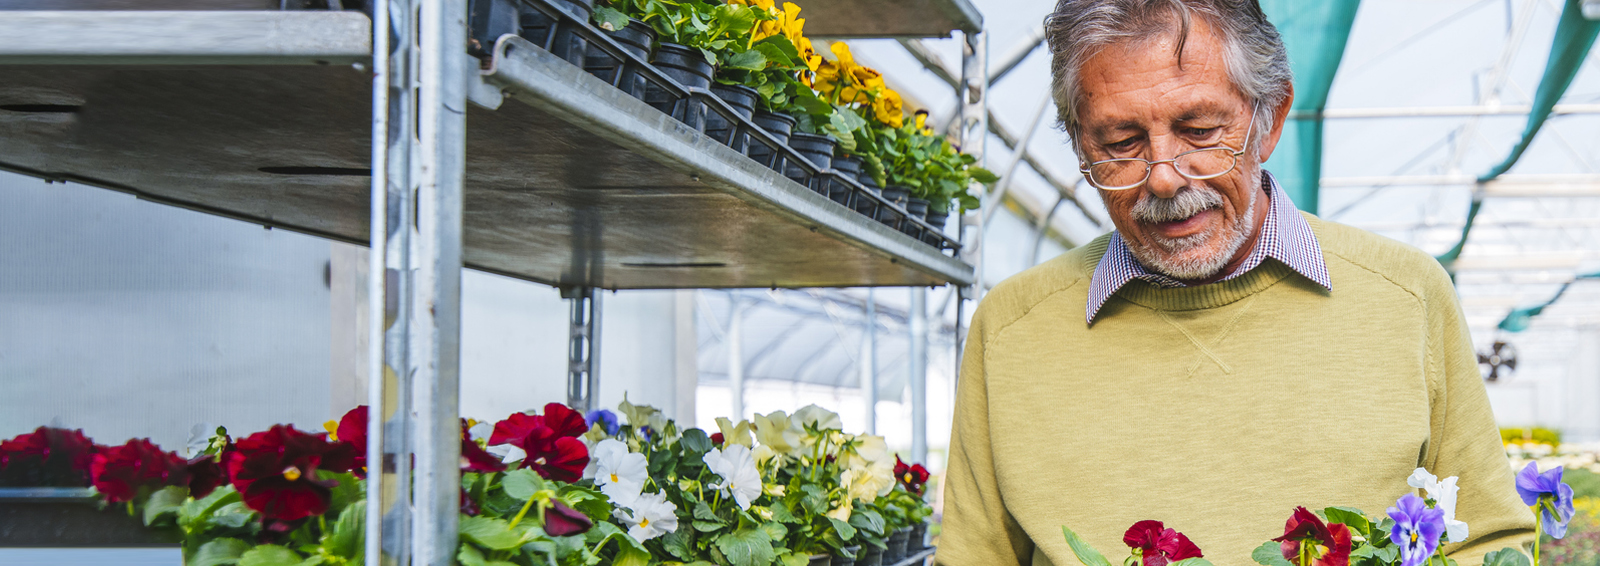 older man in greenhouse with flowers